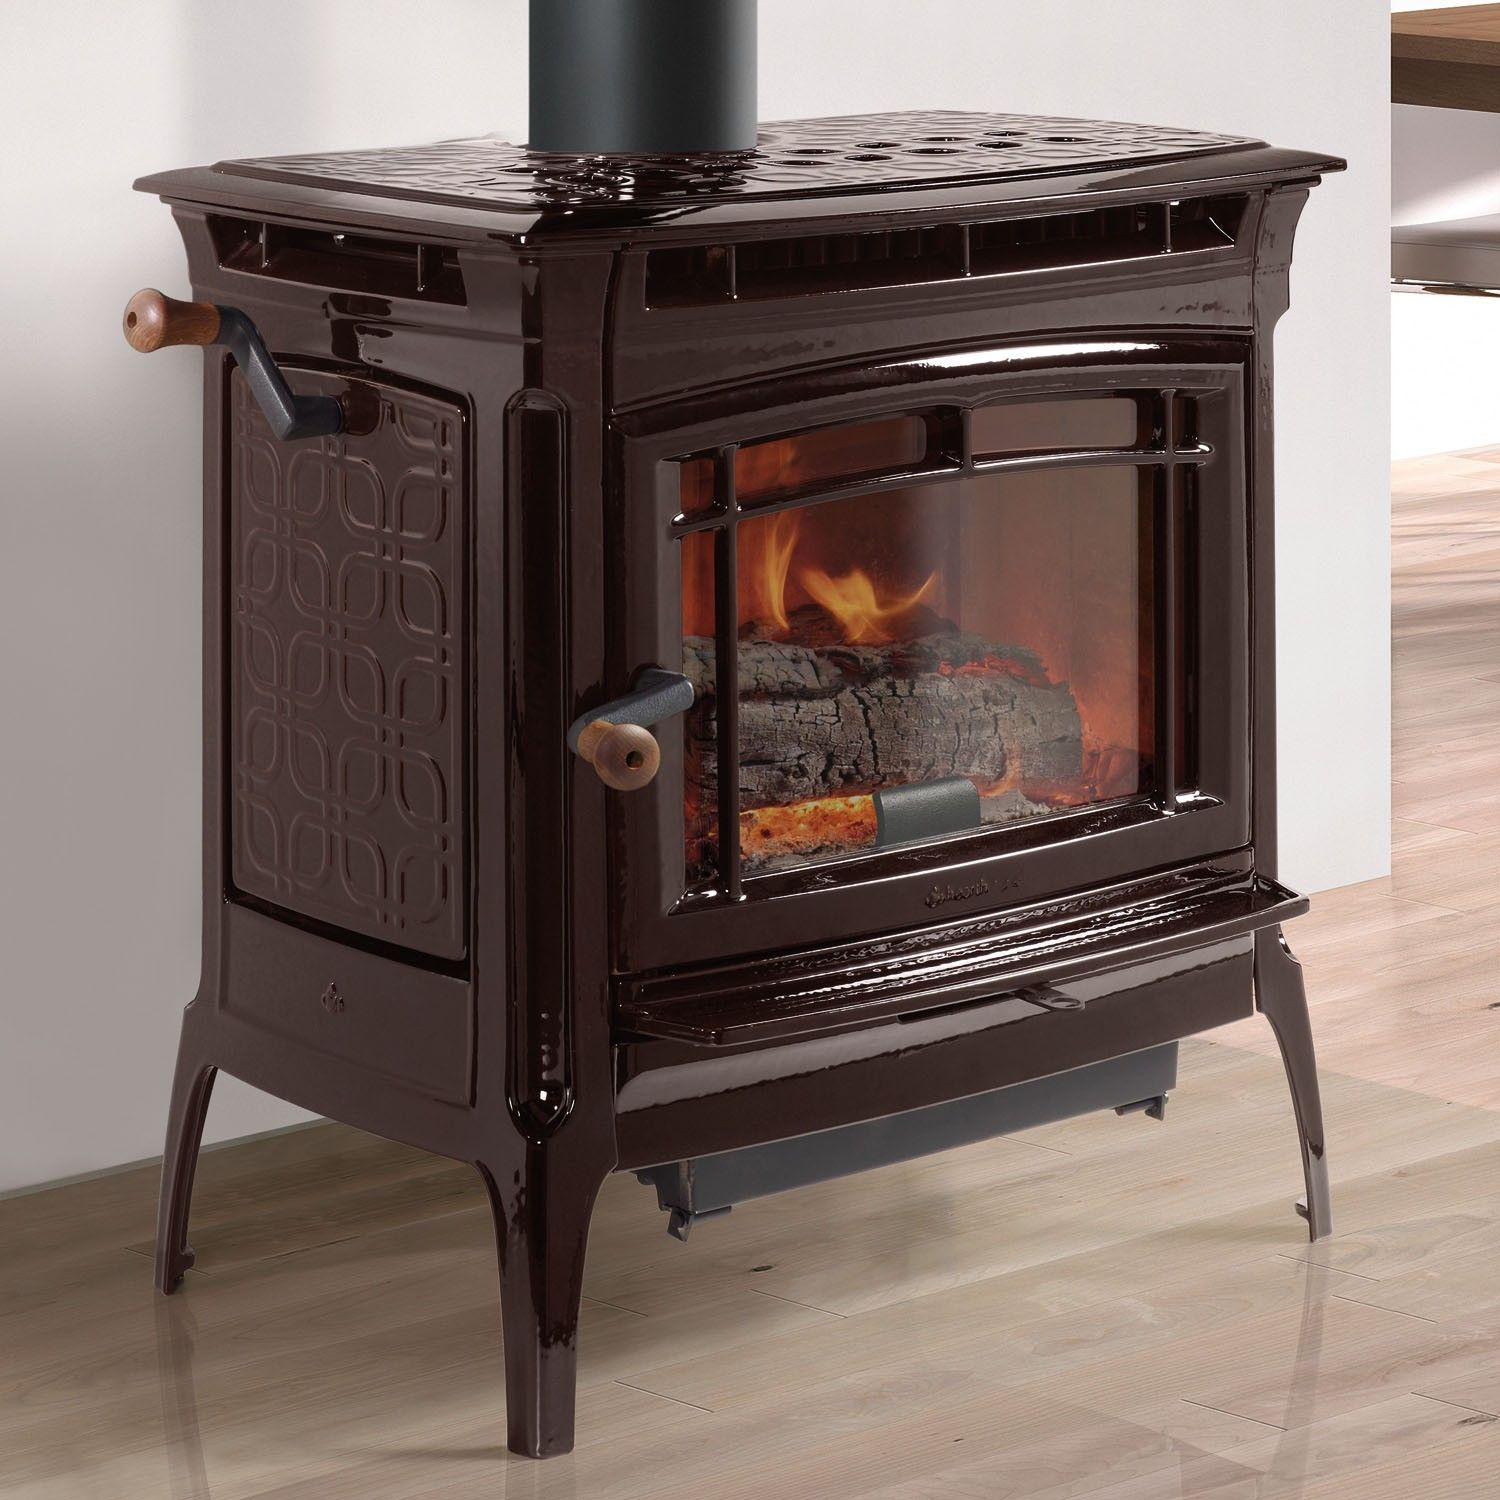 Manchester 8360 Wood Stoves Hearthstone Stoves Wood Stove Wood Burning Heaters Free Standing Wood Stove